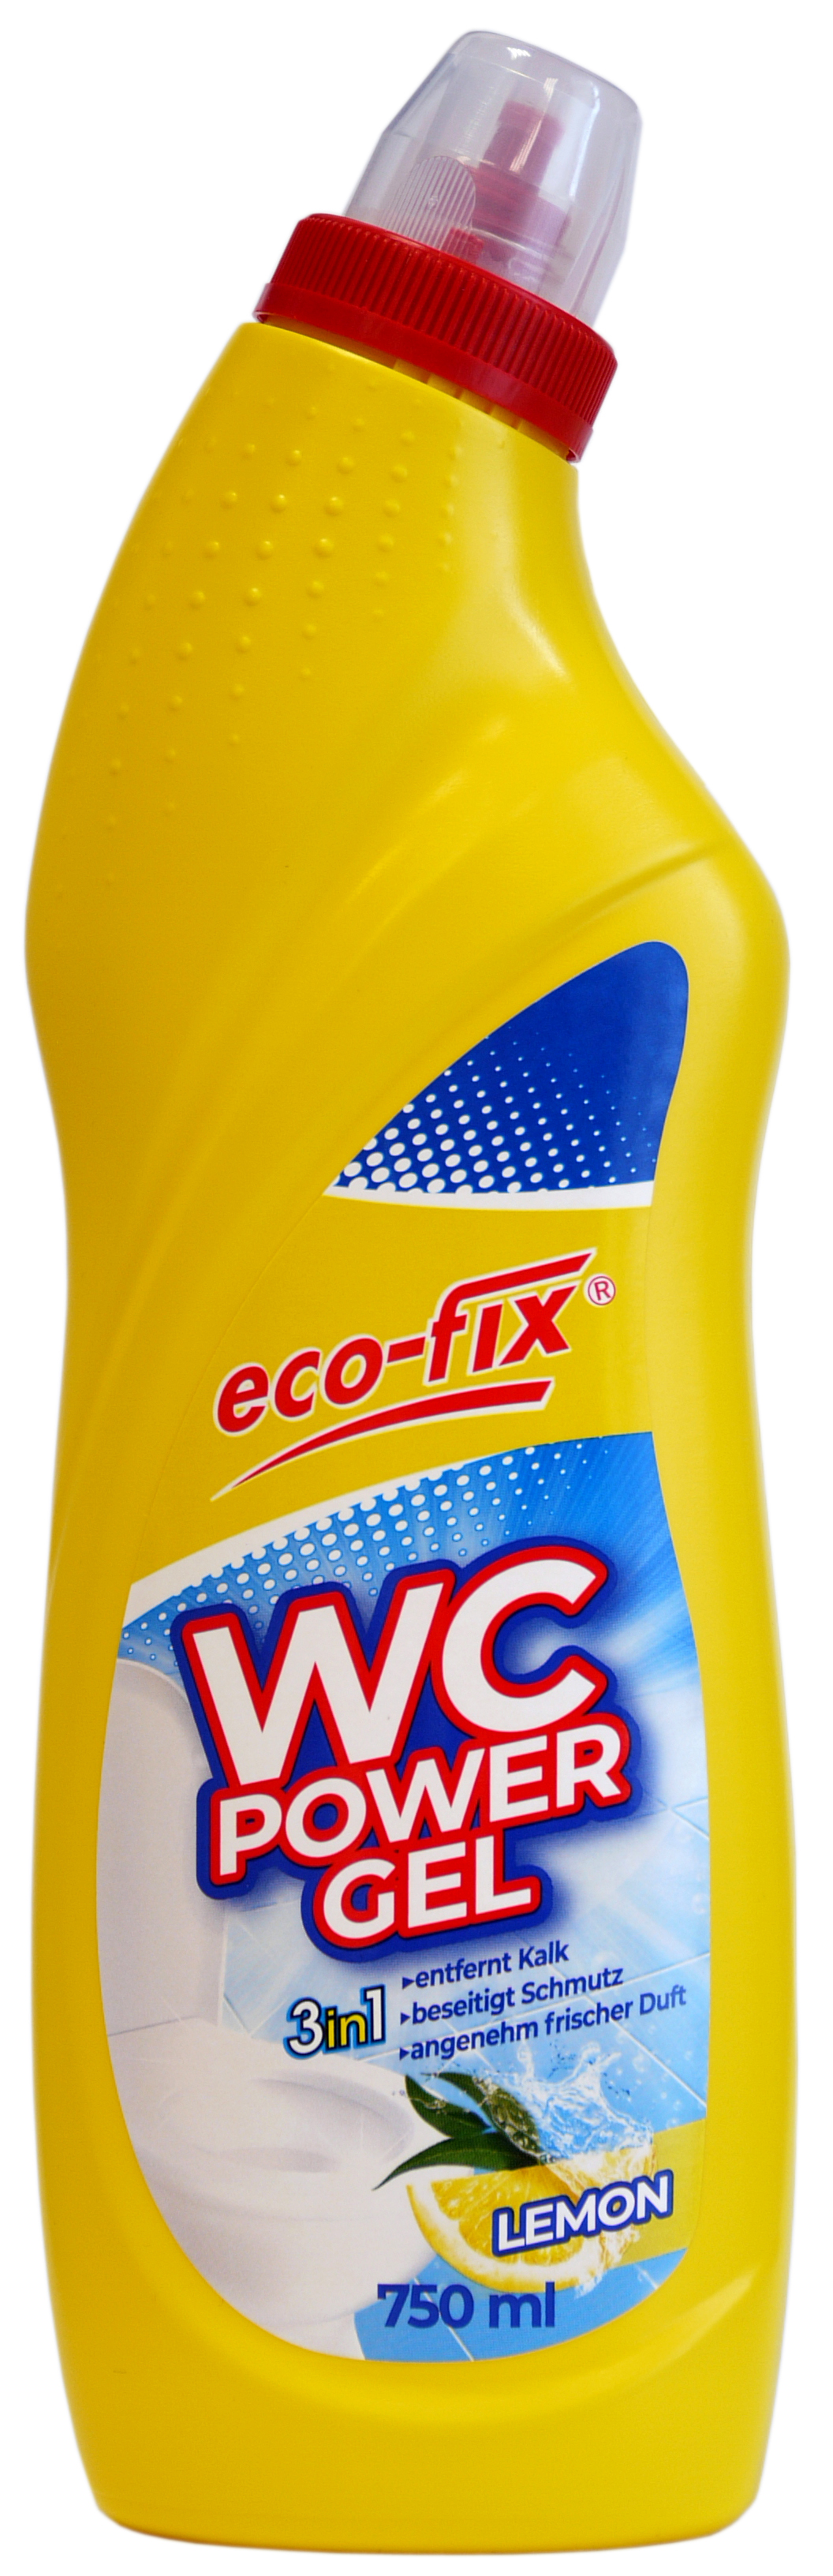 01868 - eco-fix WC Power Gel 750ml- Lemon